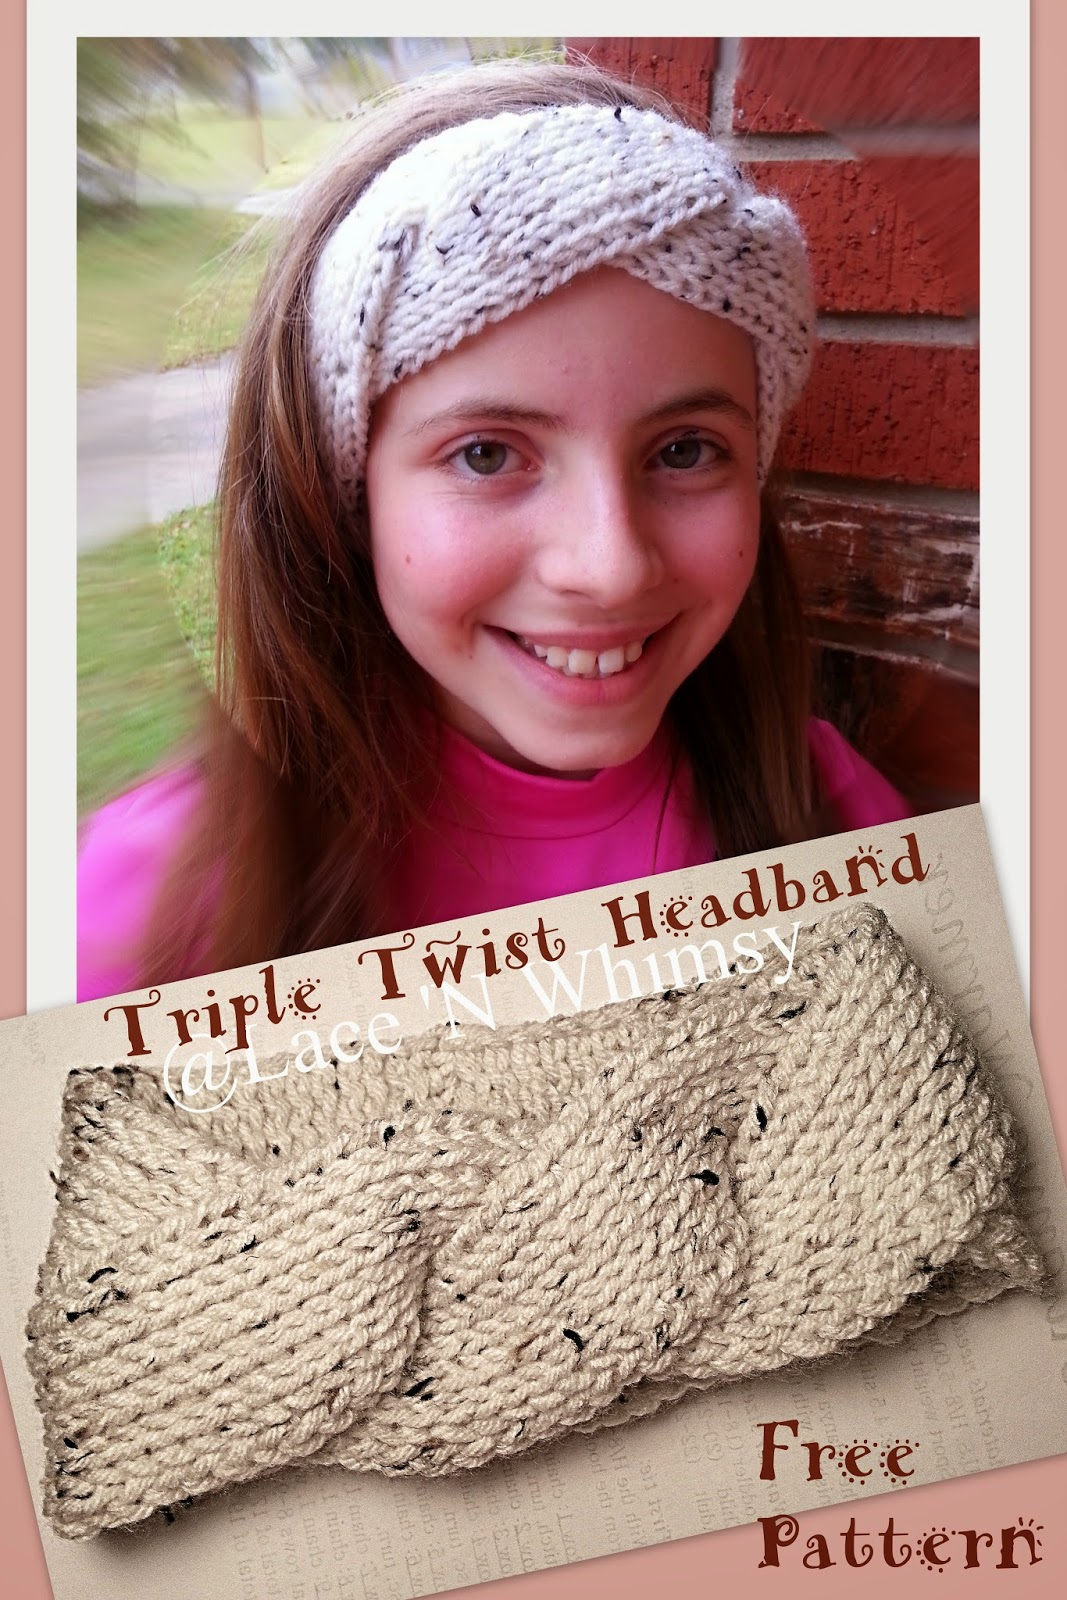 Twisted Headband Knit Pattern : Lace and Whimsy: Triple Twist Headband Ear Warmer Tunisian Knit Crochet Free ...